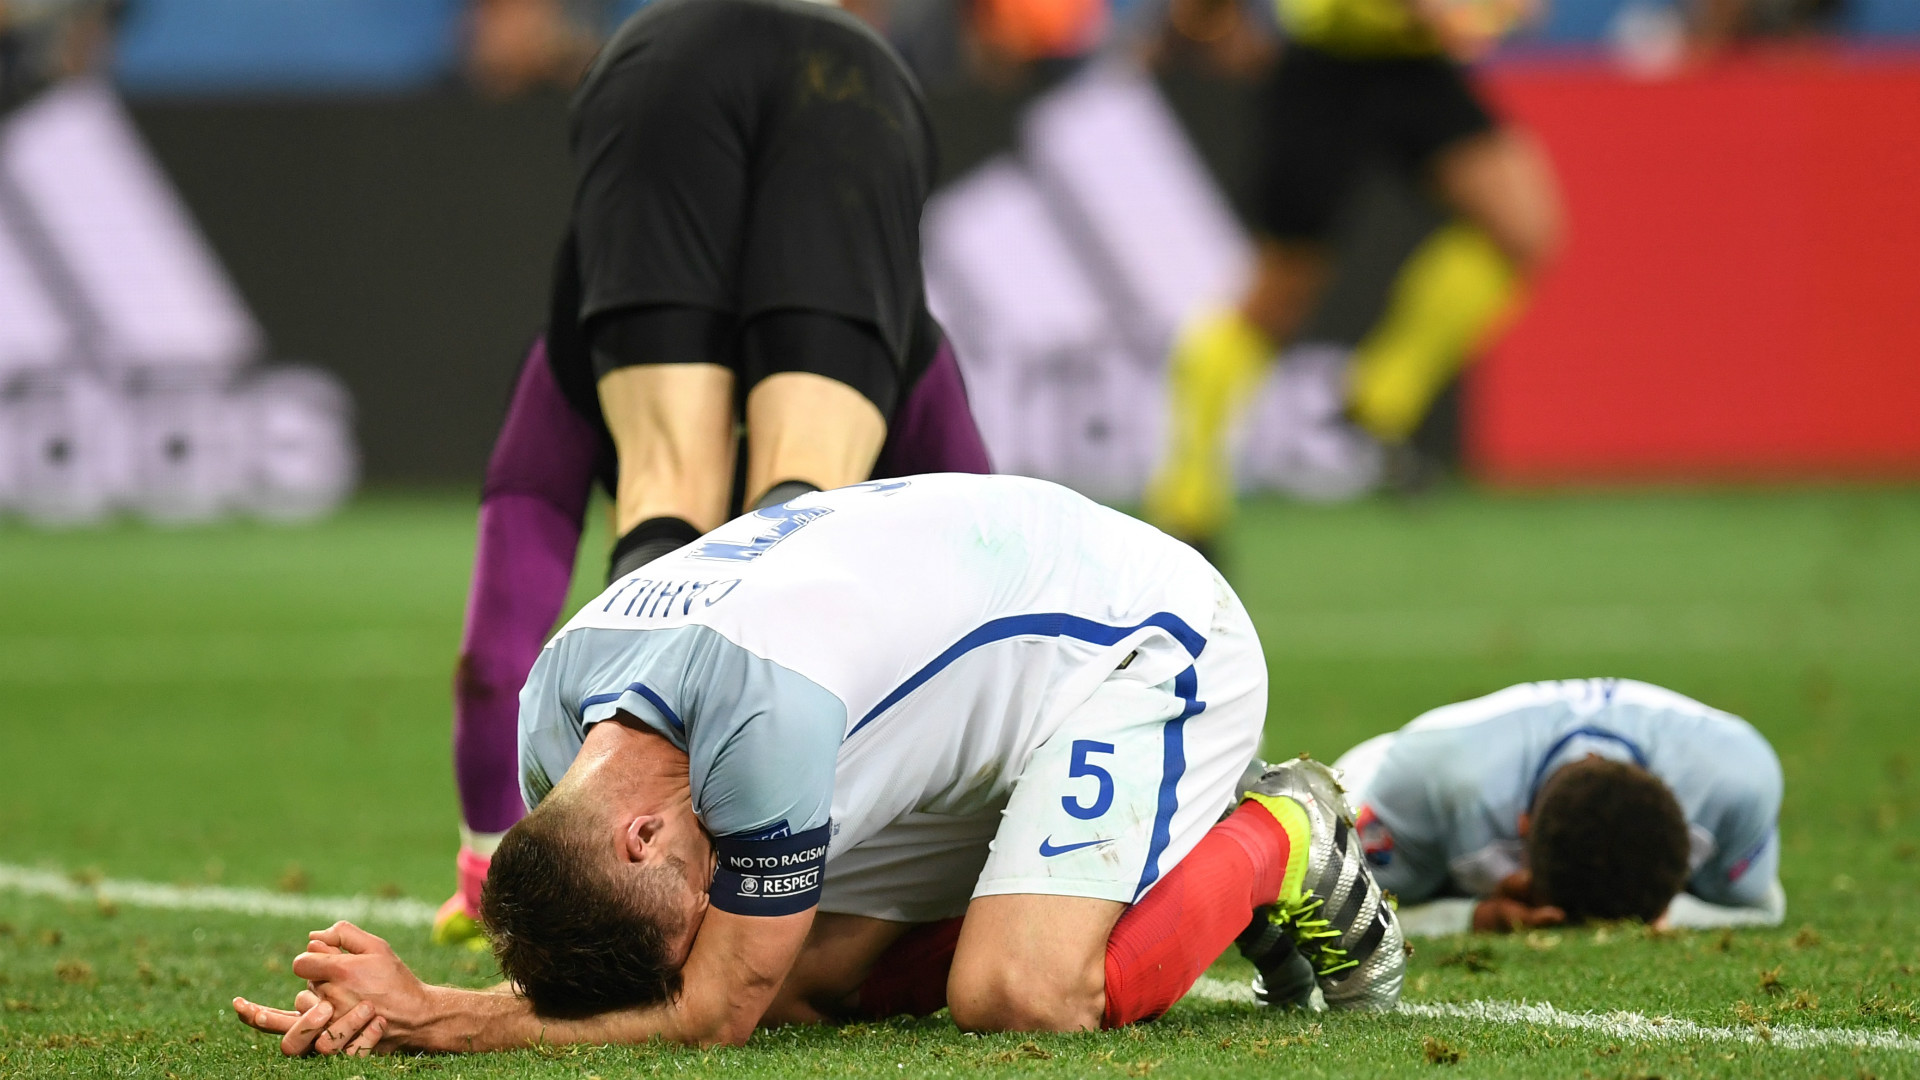 Colombian petition for Federation Internationale de Football Association to review England match attracts over 270,000 signatures